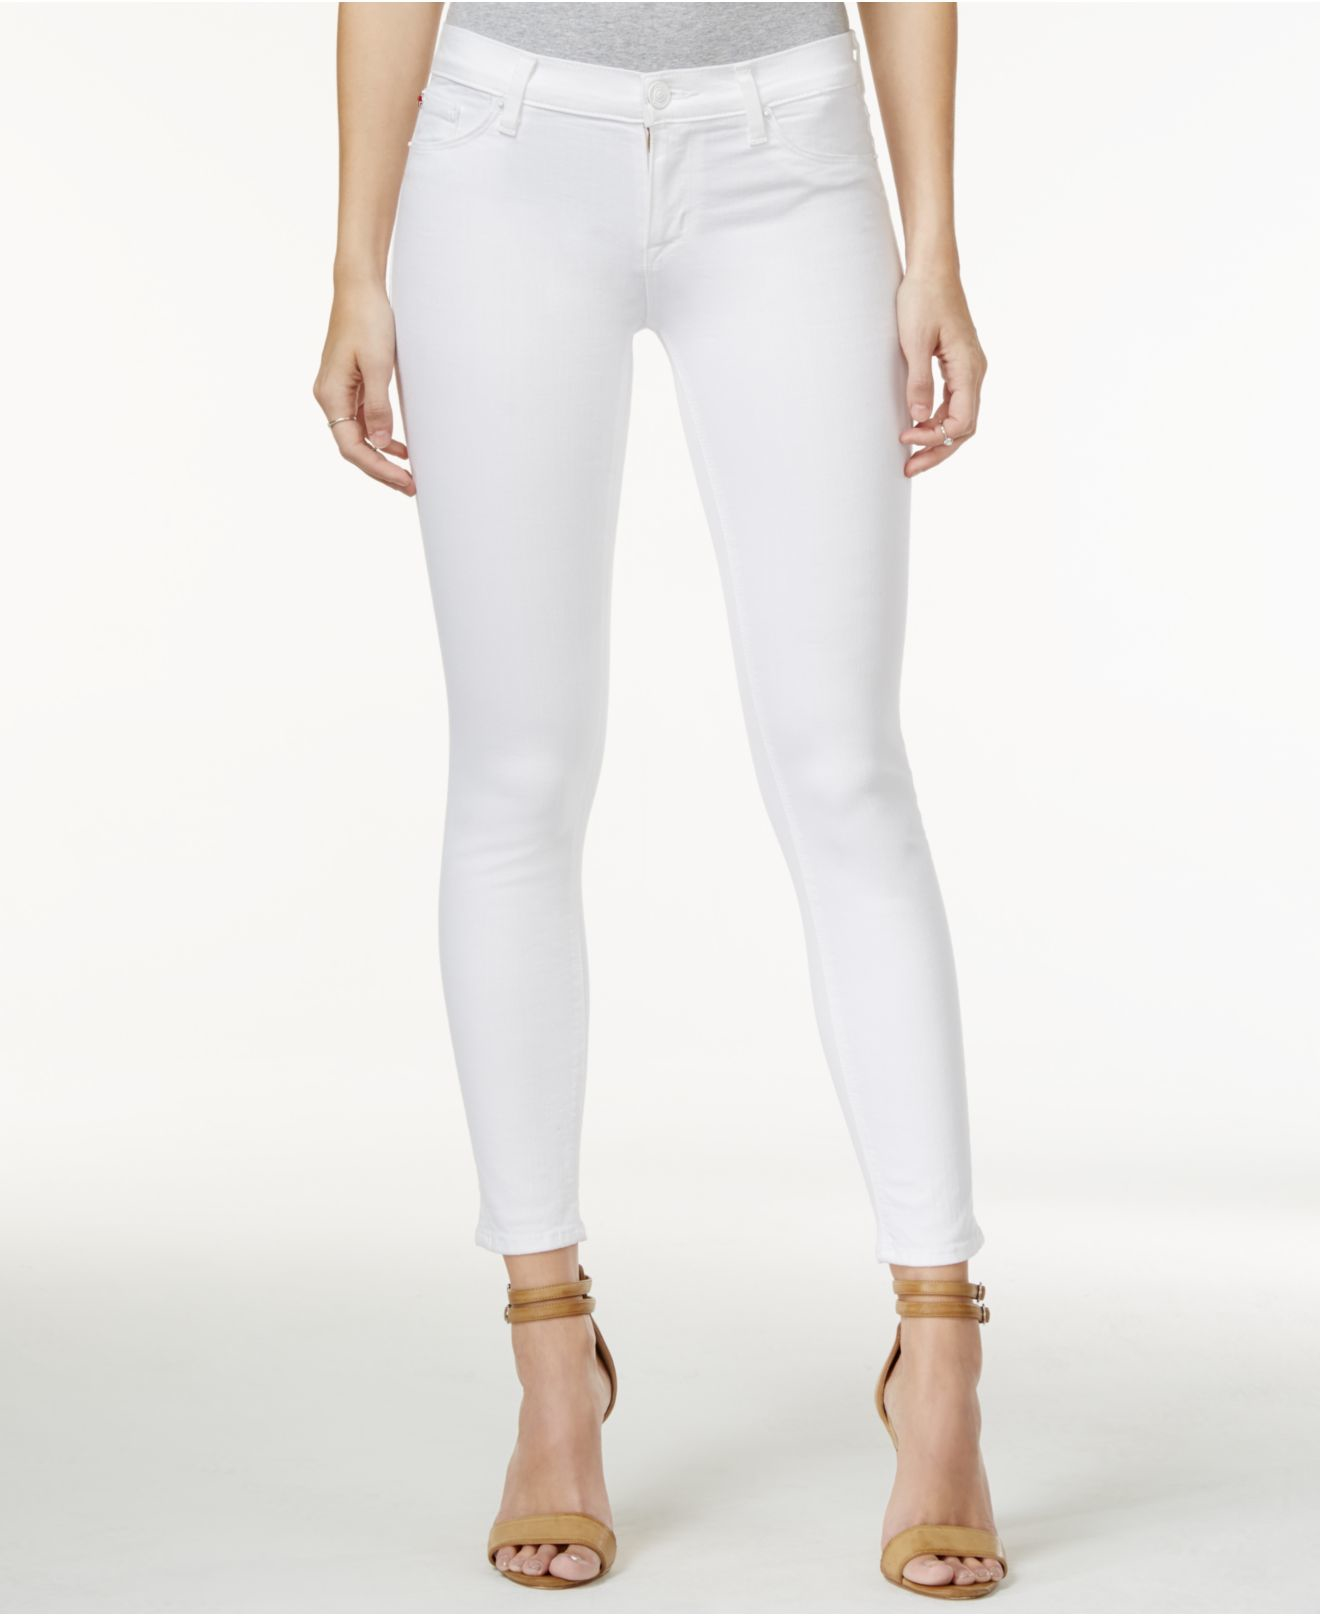 White Wash Skinny Jeans